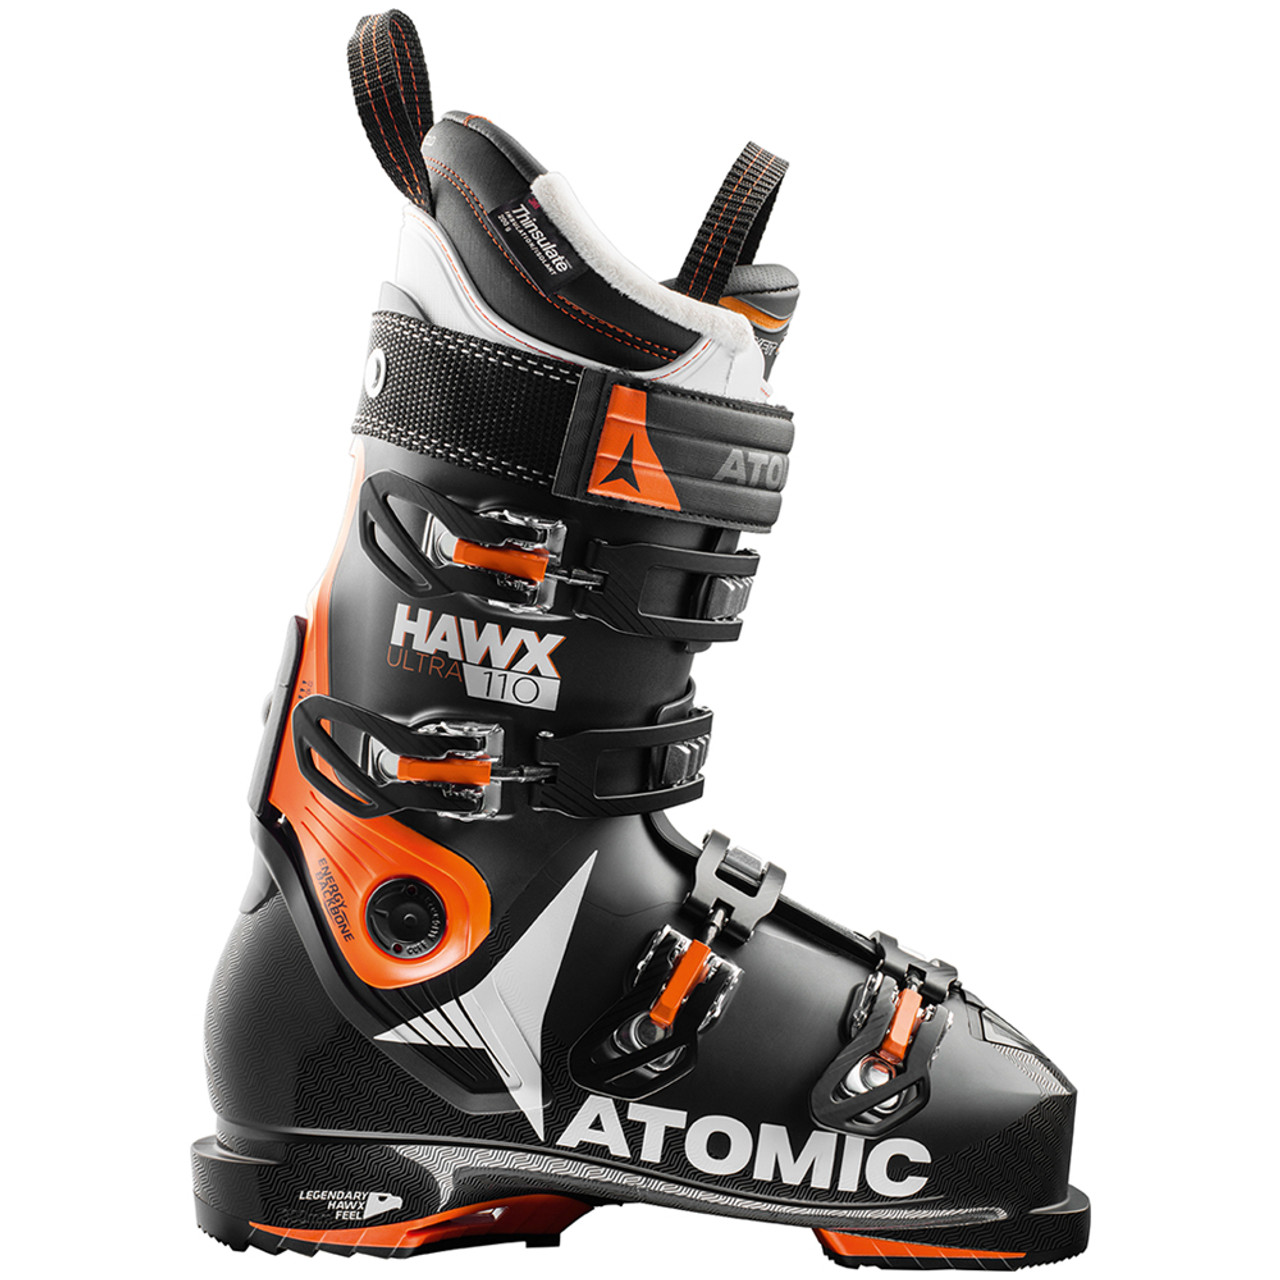 low priced baddd 5d253 2018 Atomic Hawx Ultra 110 Mens Ski Boots